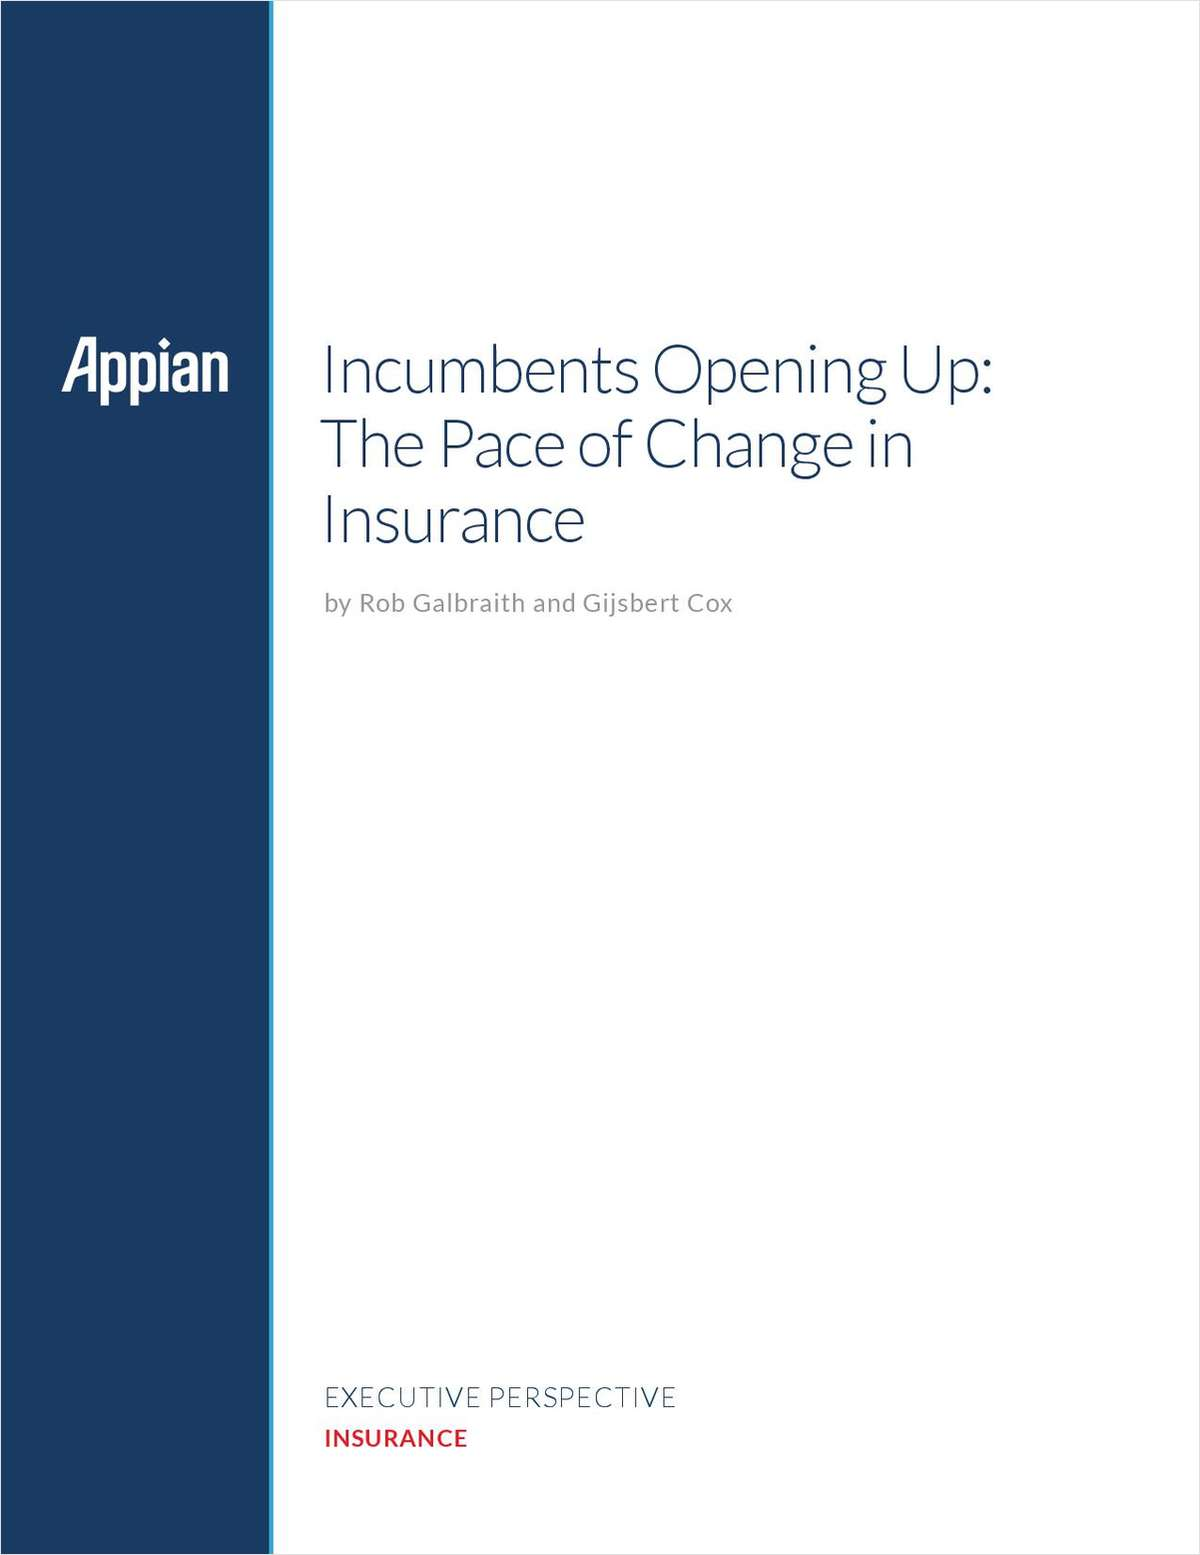 Executive Perspective: Incumbents Opening Up: The Pace of Change in Insurance